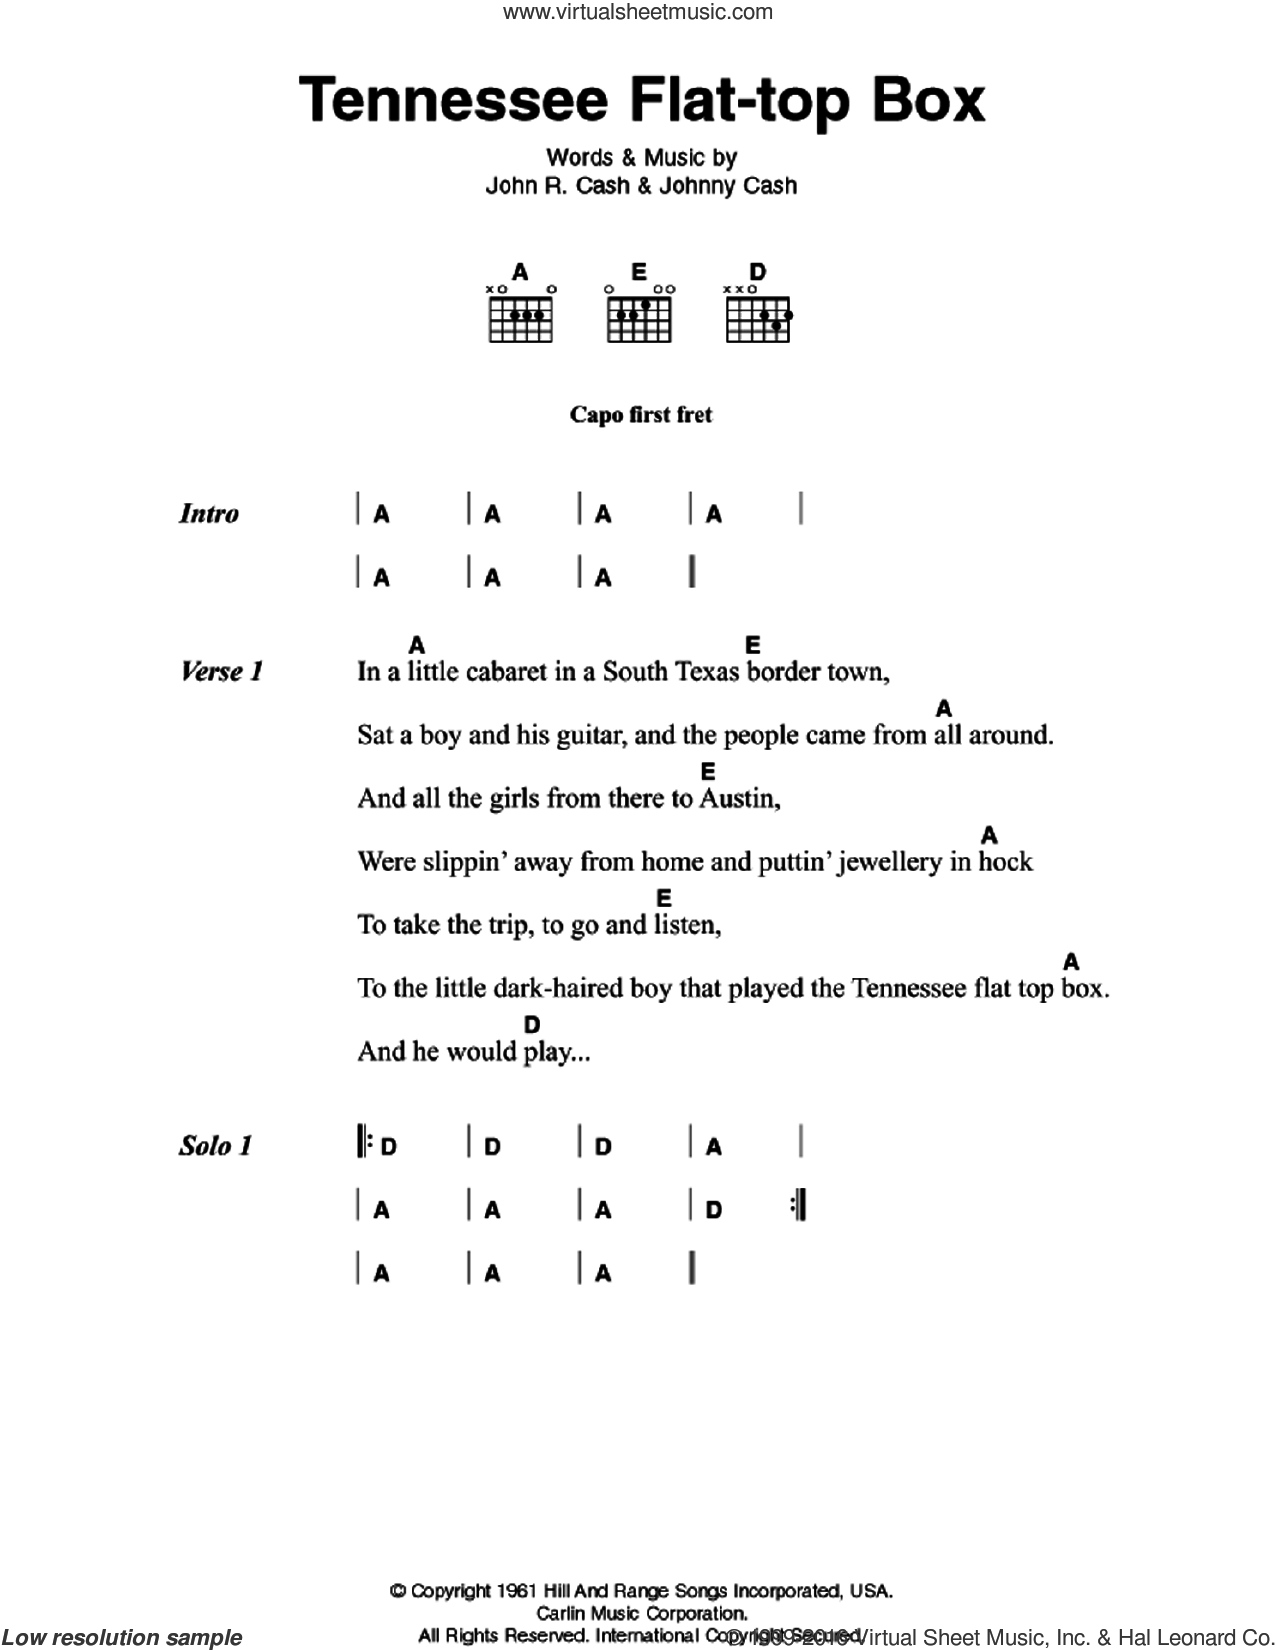 Tennessee Flat-top Box sheet music for guitar (chords) by Johnny Cash